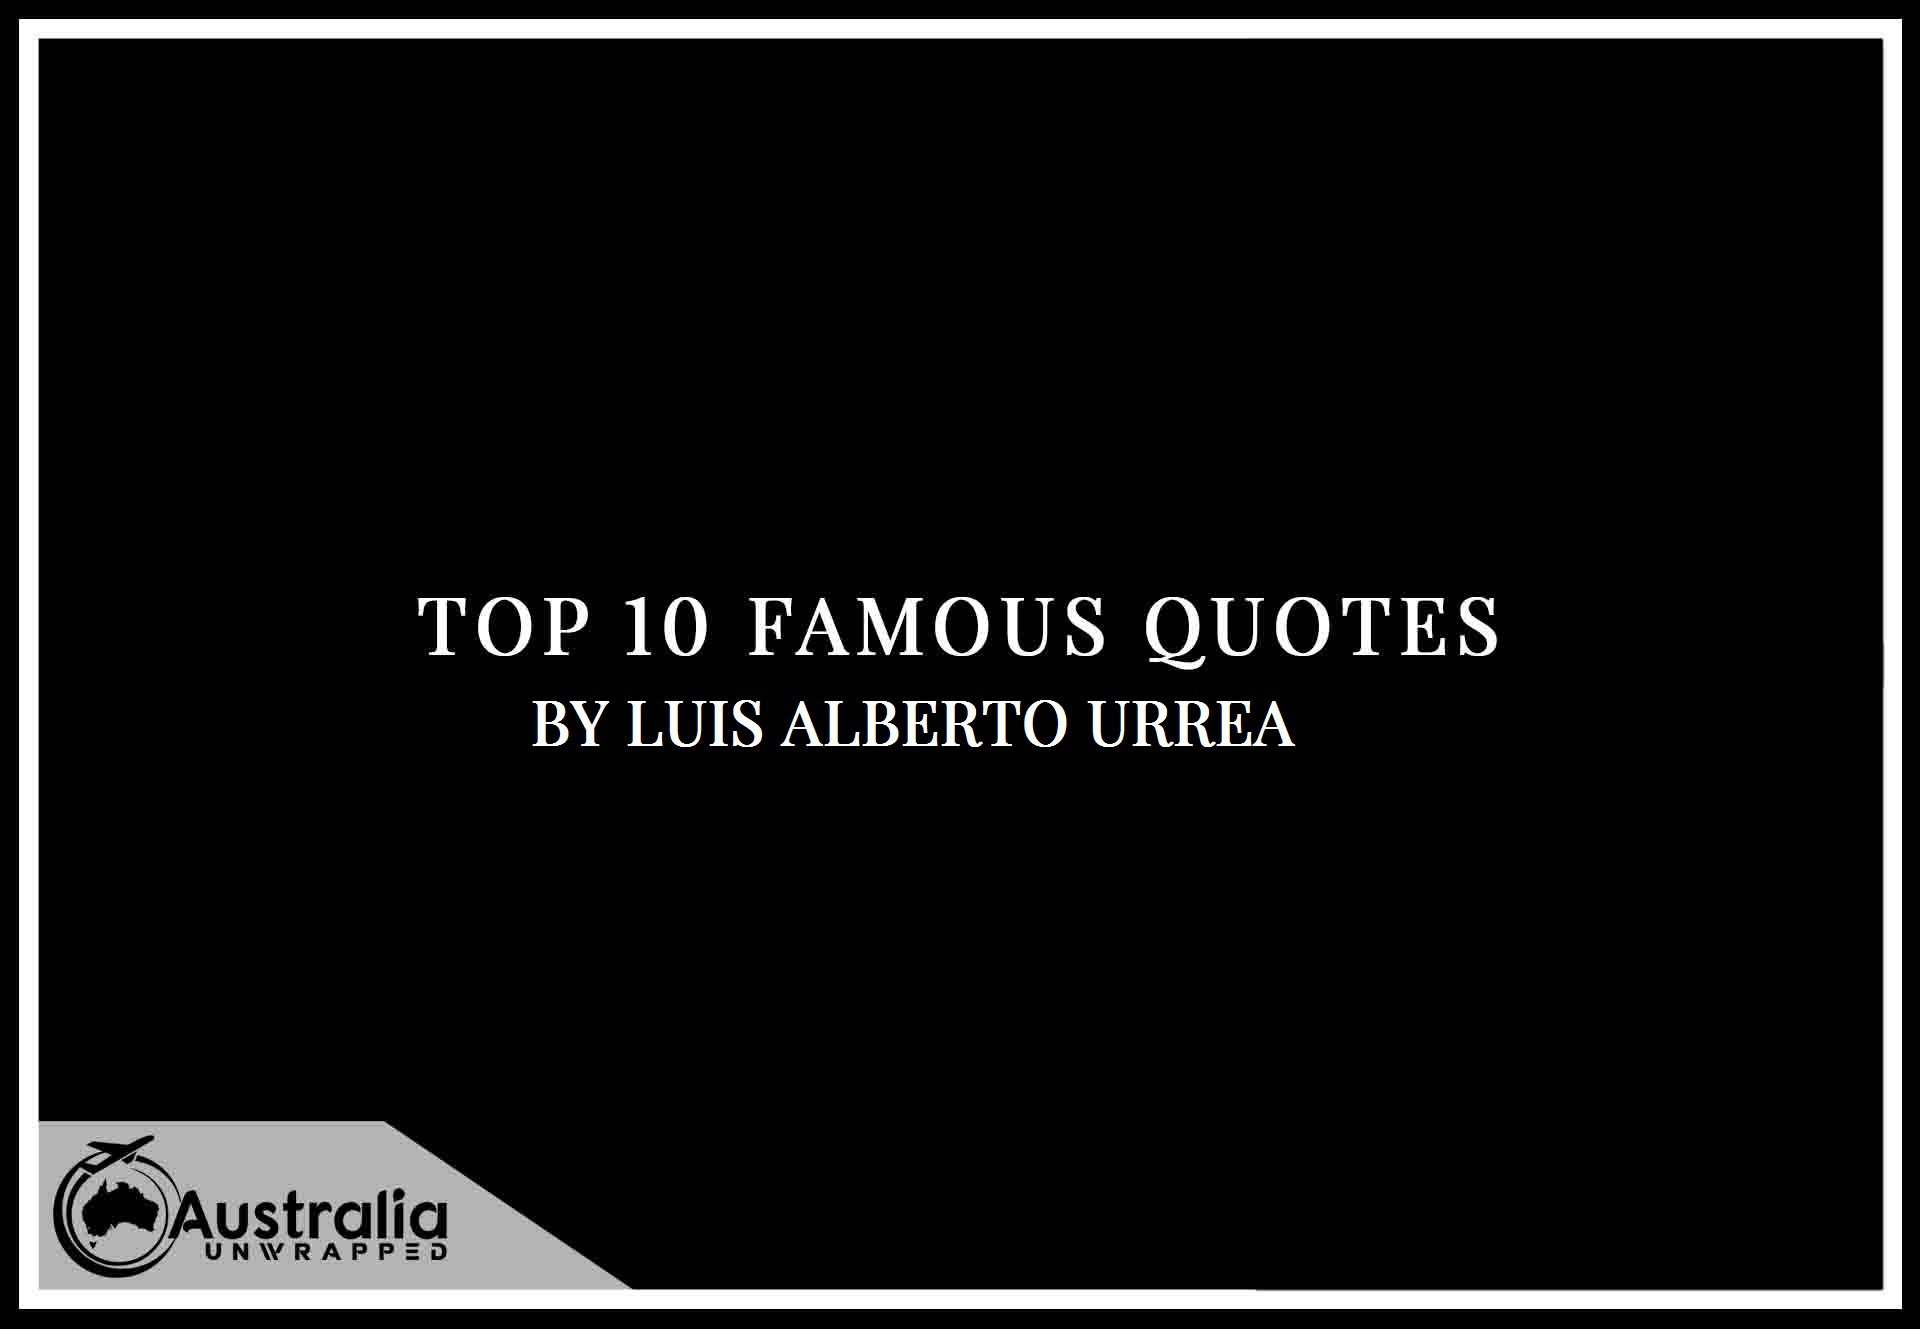 Luis Alberto Urrea's Top 10 Popular and Famous Quotes